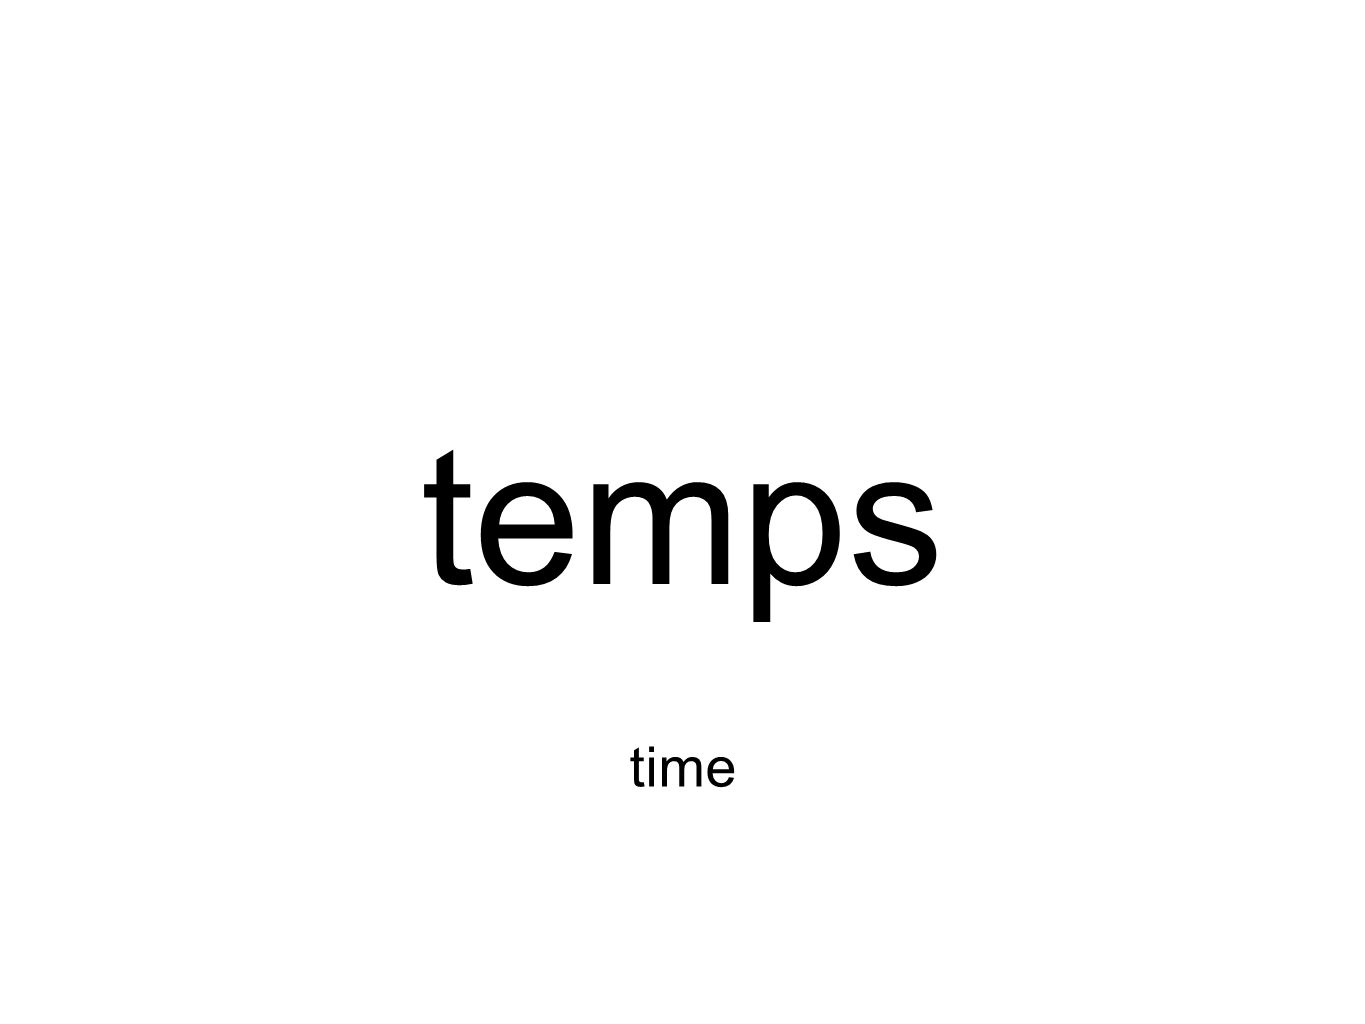 temps time